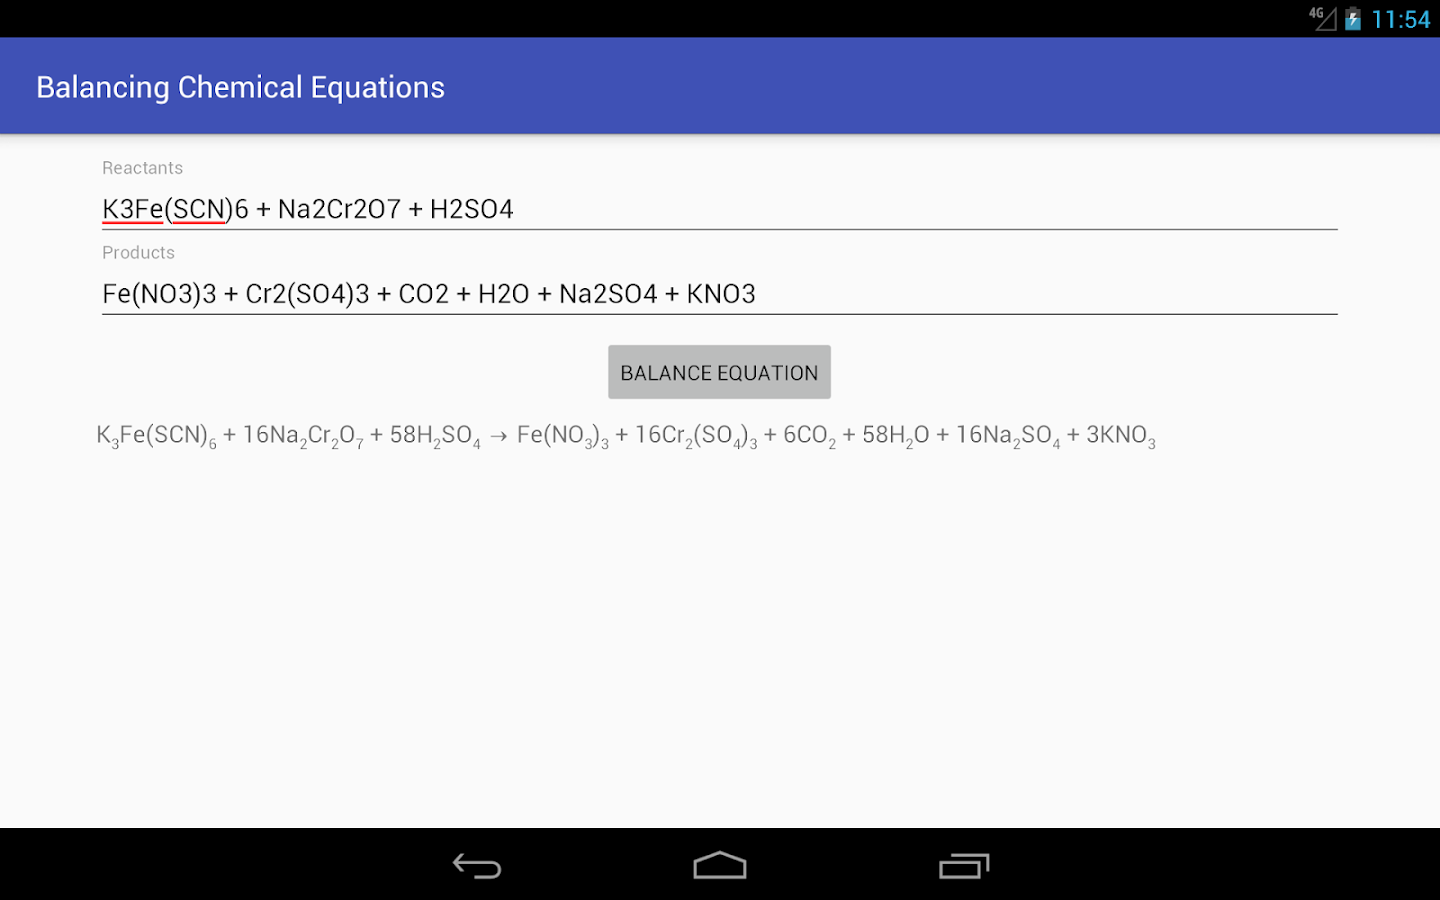 Balancing Chemical Equations Android Apps on Google Play